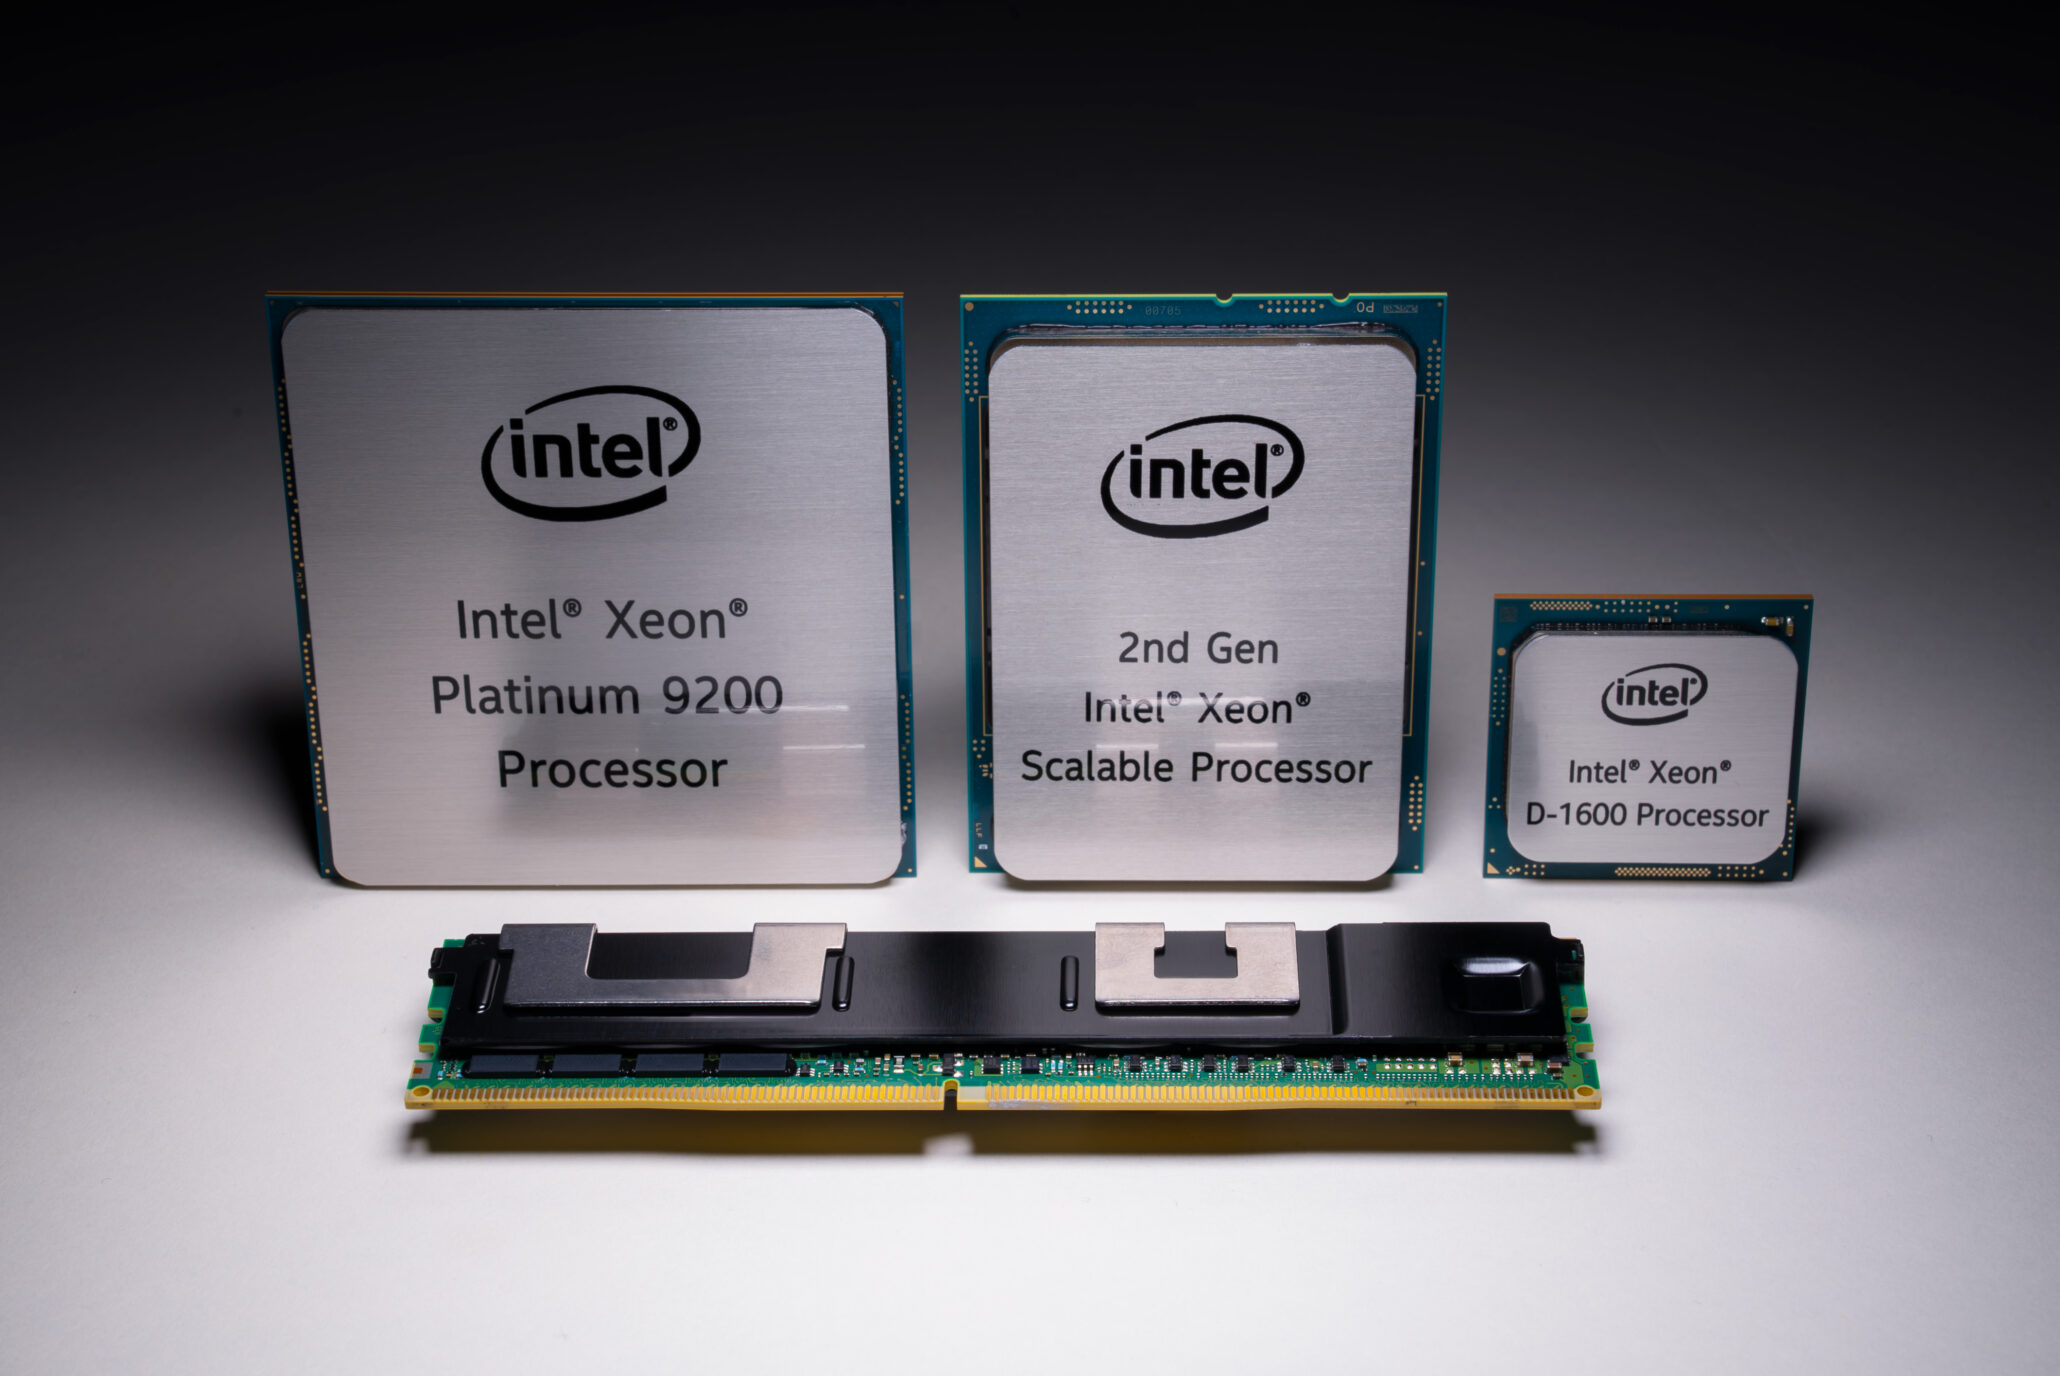 Intel Data Center Innovations Announced With 2nd Generation Xeon CPUs